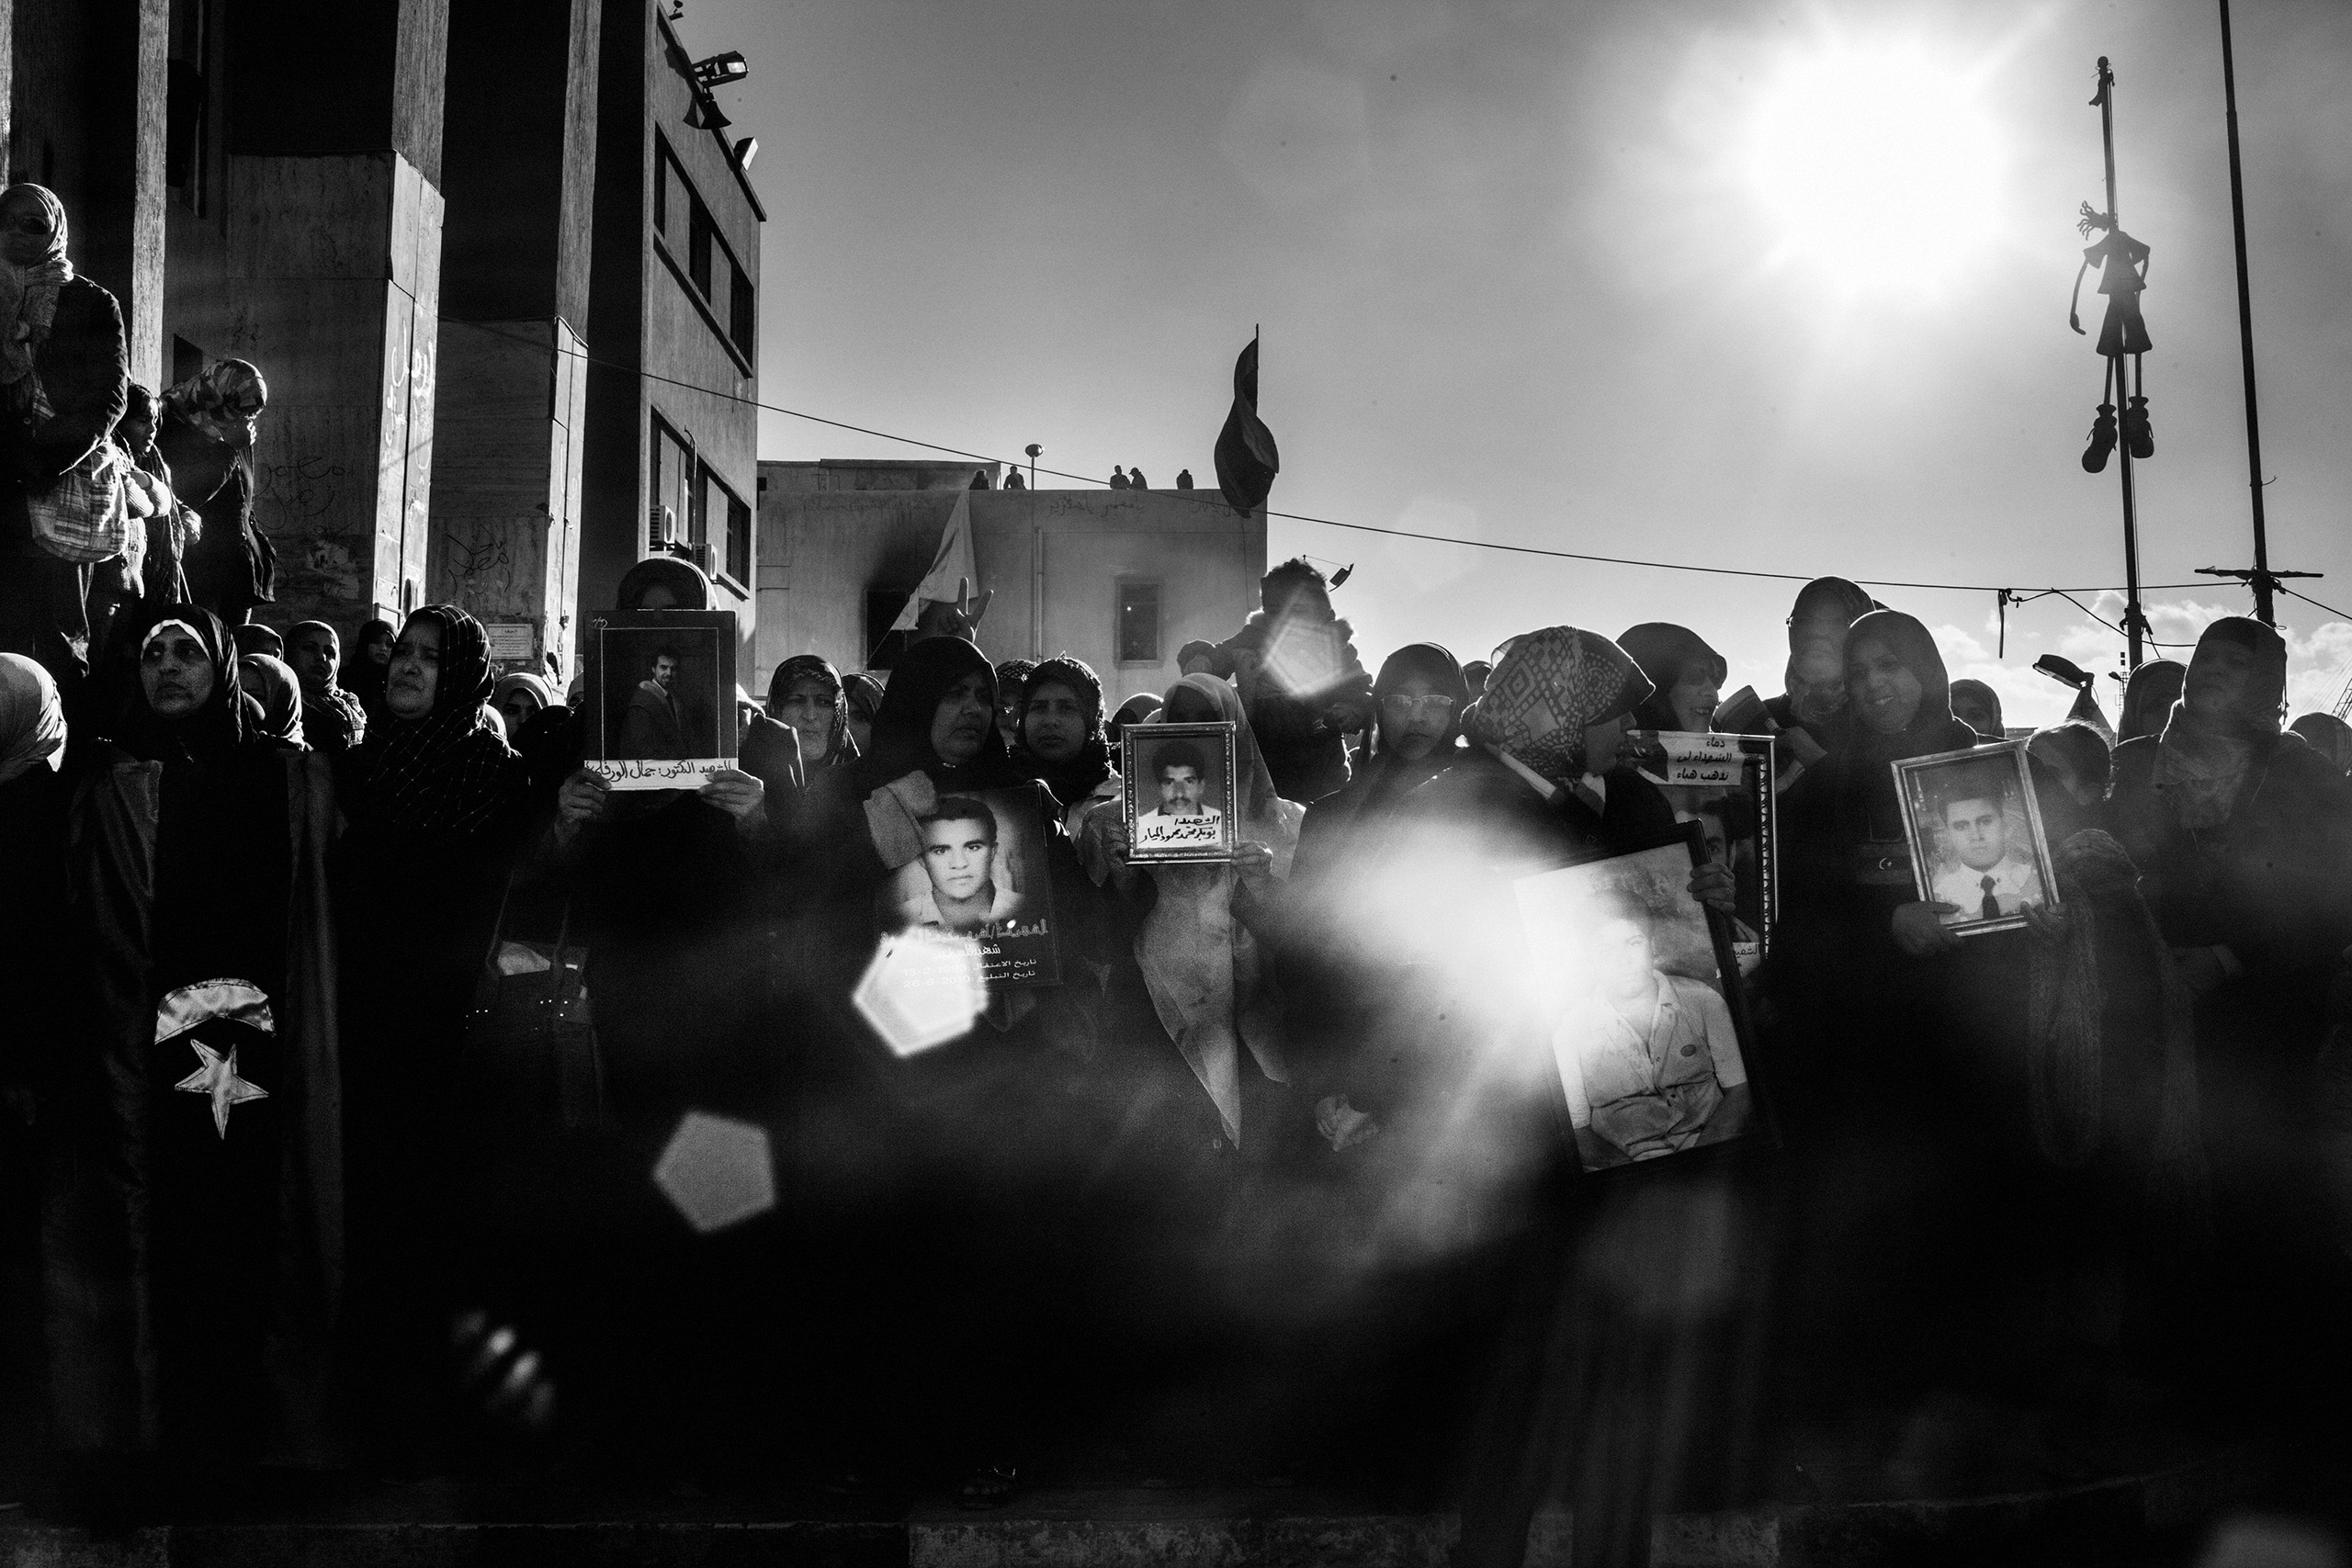 Libyan women demonstrate in the central square of Benghazi in memory of the death of fighters killed by Gaddafi forces,  Feb. 28, 2011.